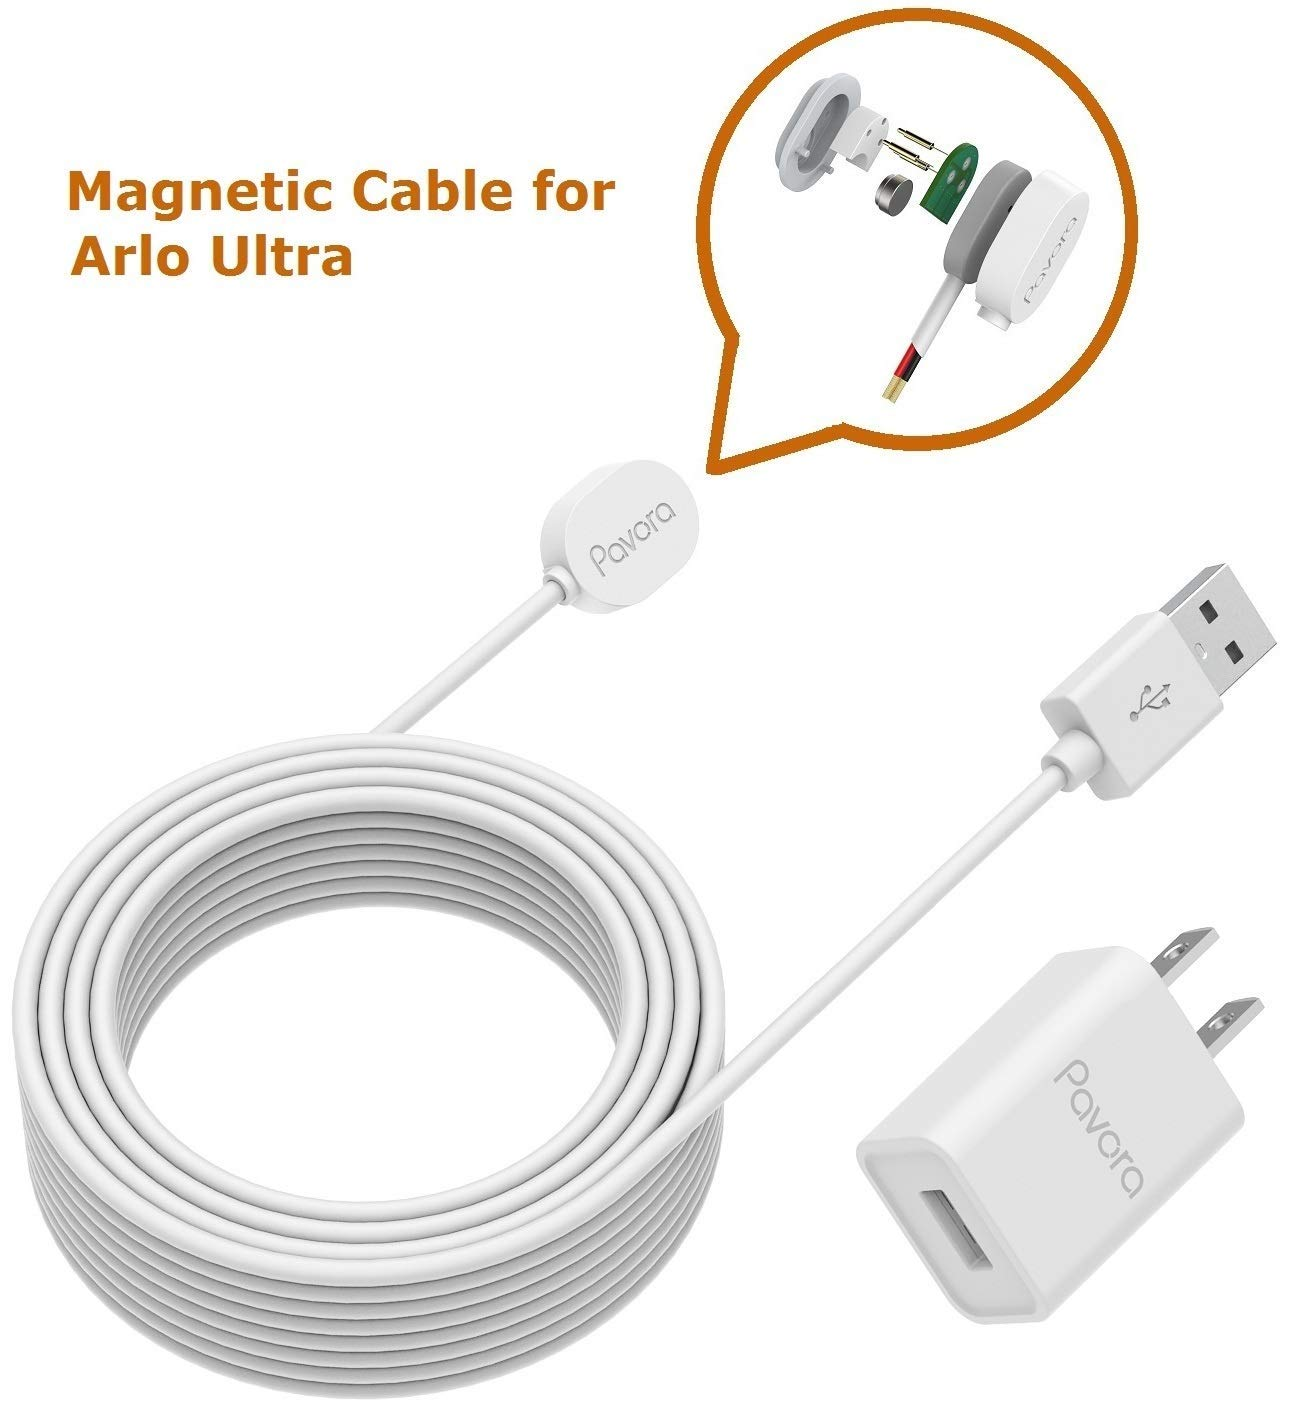 Arlo Ultra Power Cable and Adapter, Magnetic Charging Cable for Arlo Ultra 25ft/7.6M Weatherproof Outdoor or Indoor Cable with Quick Charger Power Adapter Compatible Arlo Ultra by Pavora